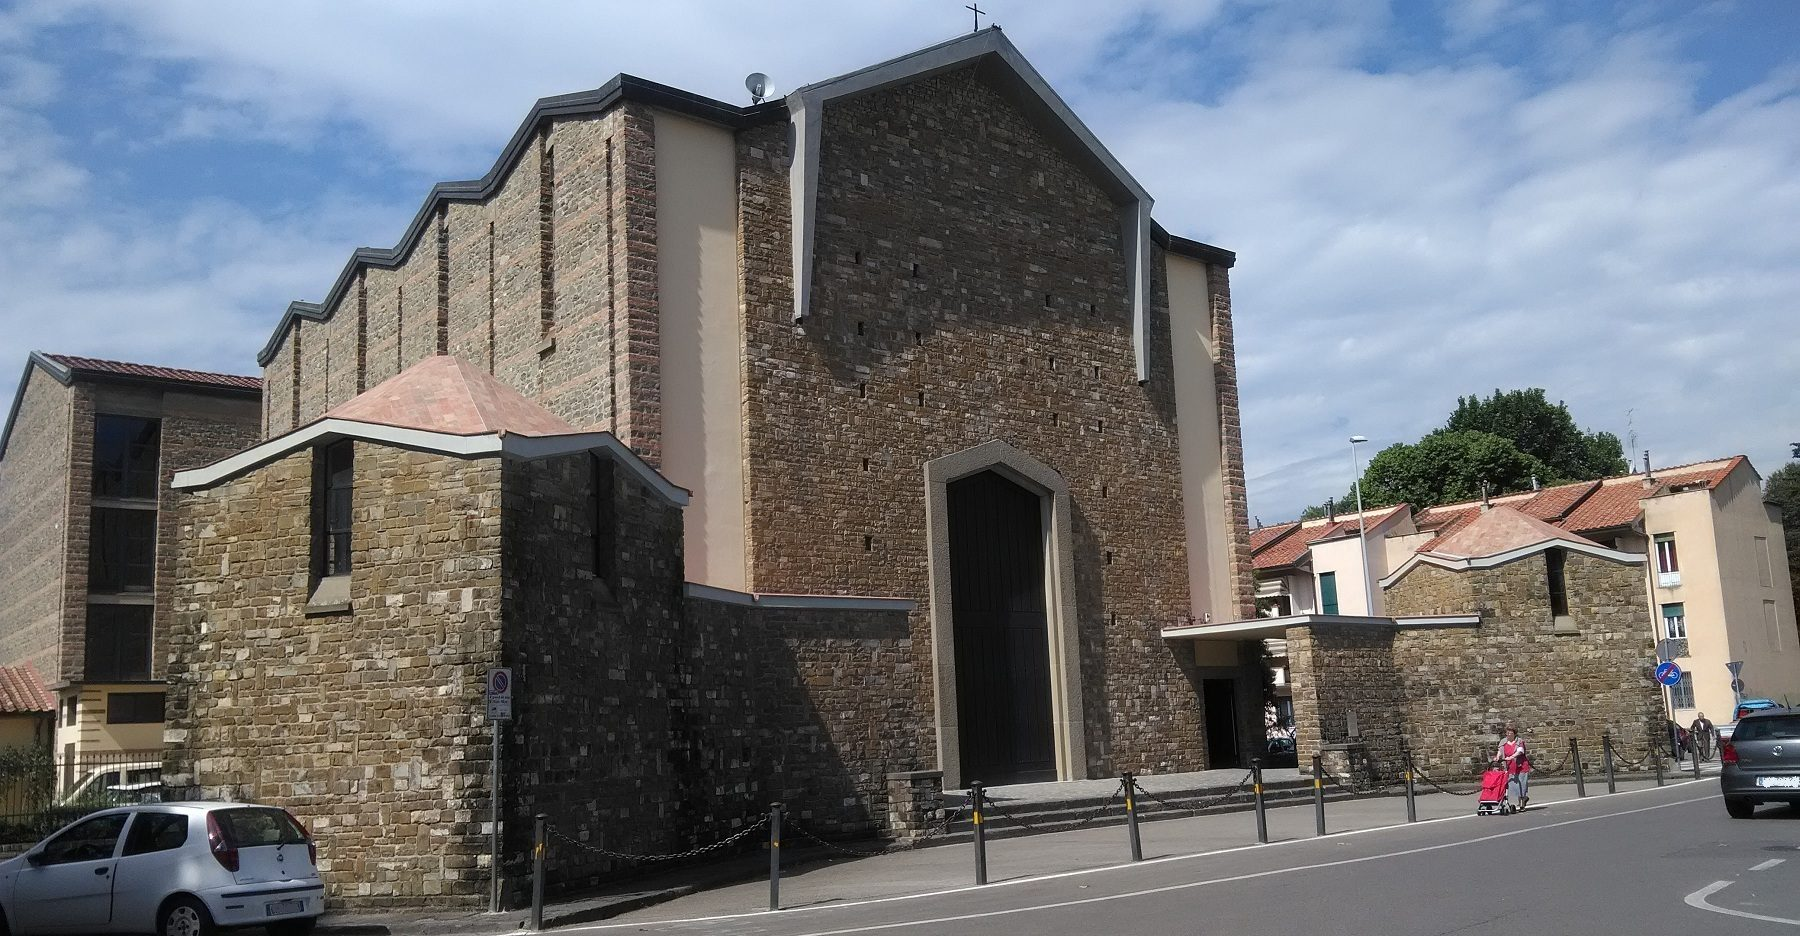 chiesa Beata Vergine Maria all'Isolotto (1)